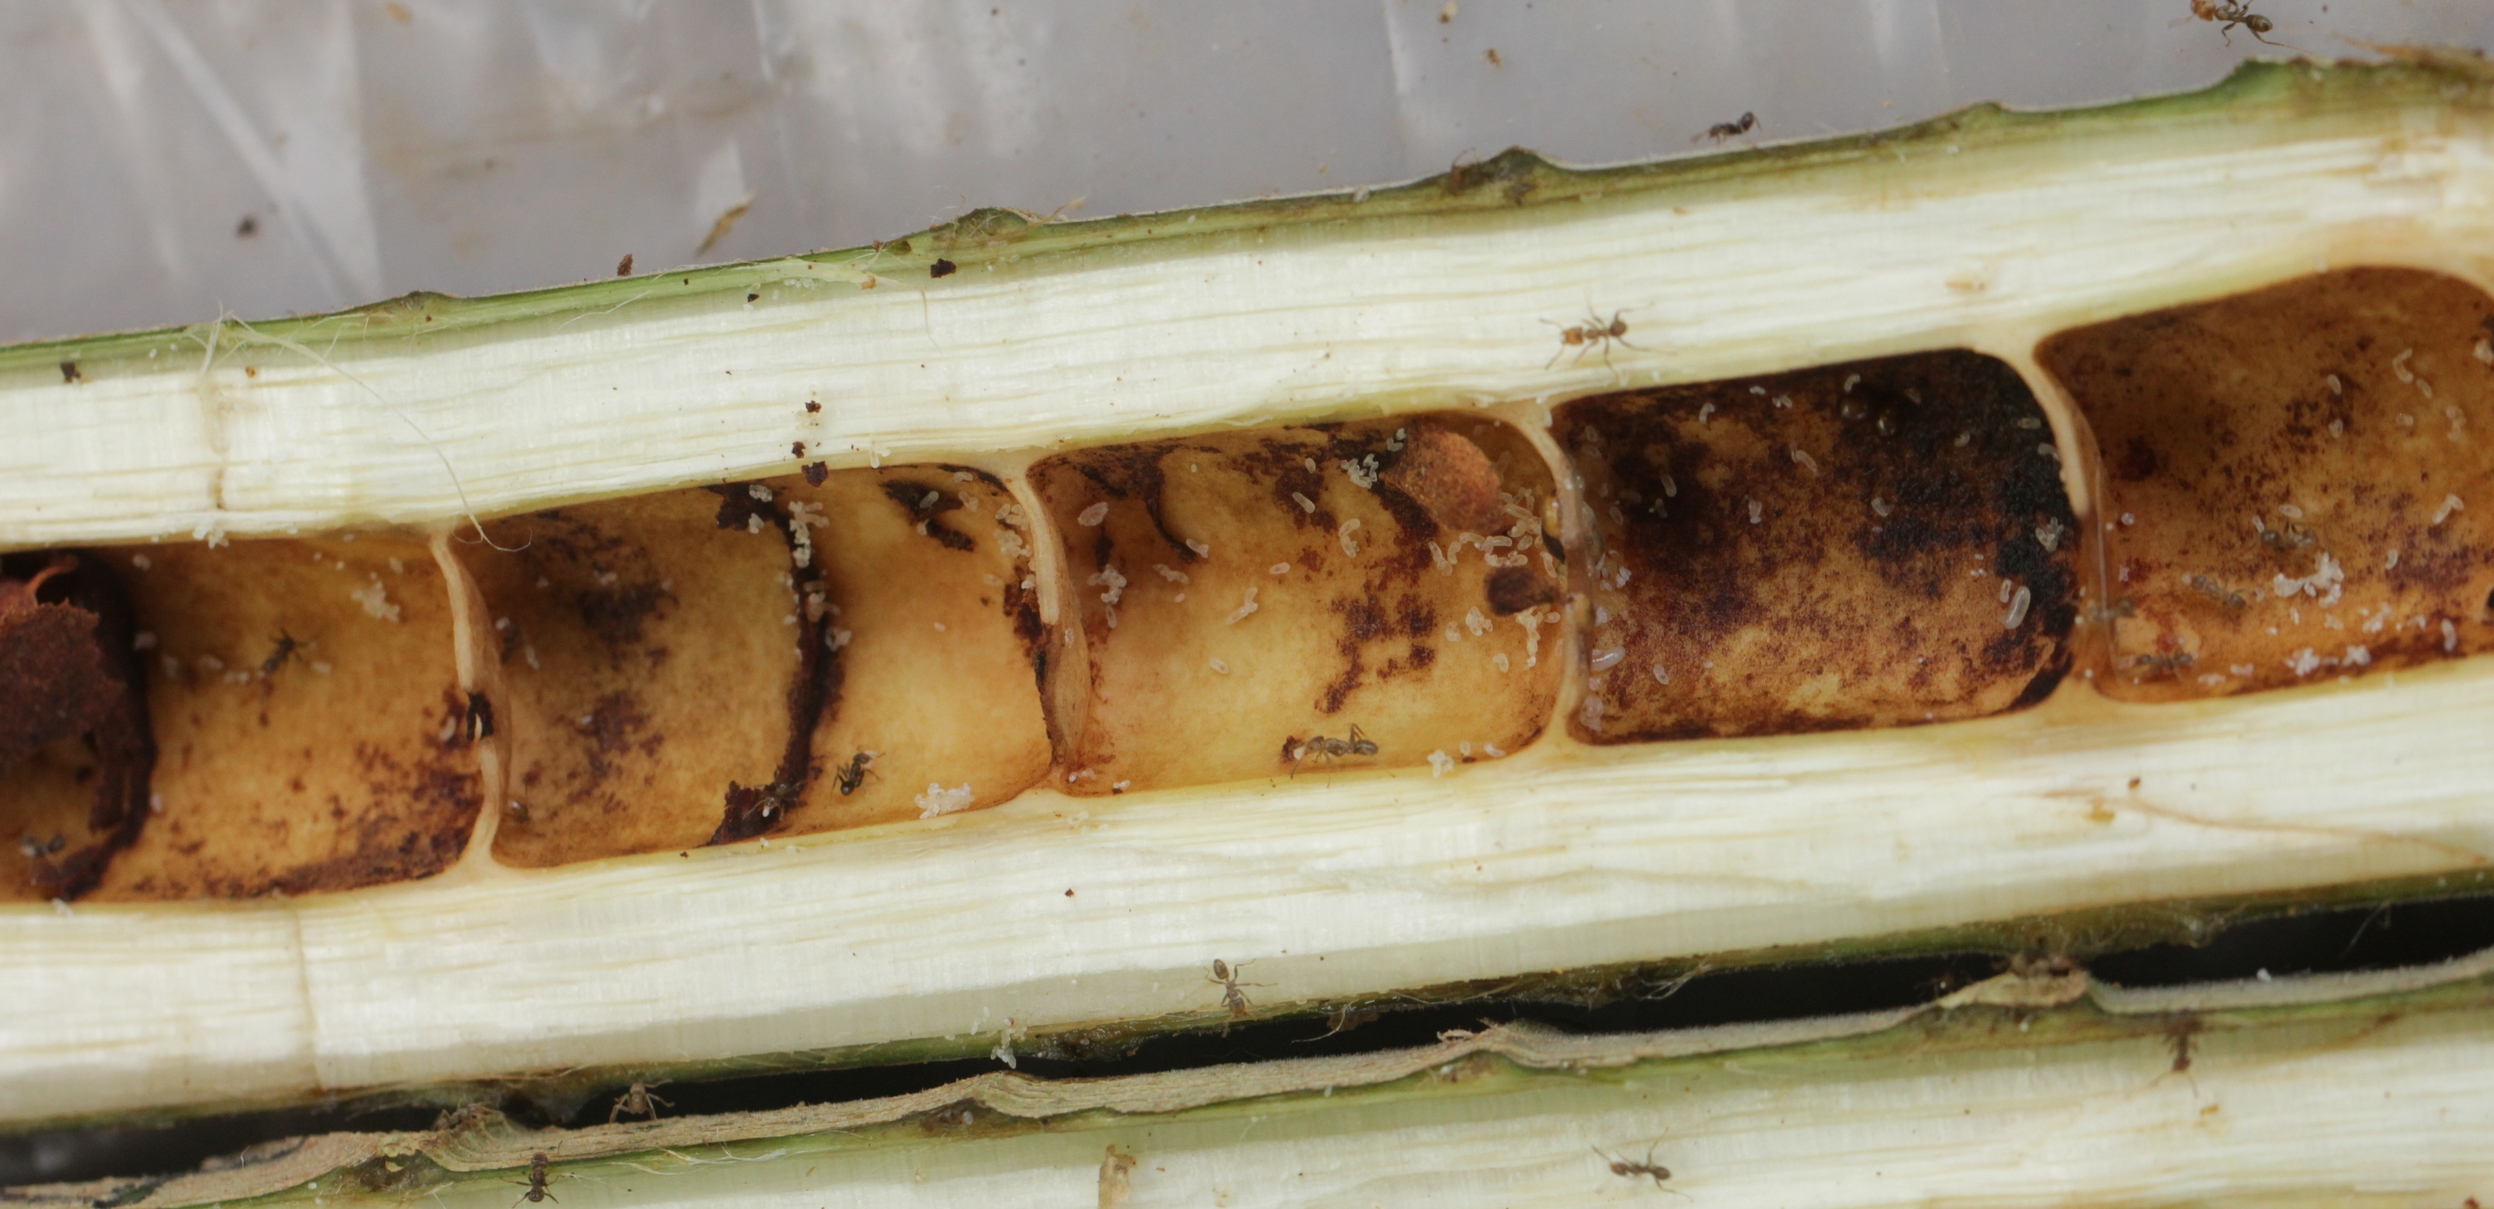 A cross section of the Cecropia stem reveals hollow internodes where the ants reside